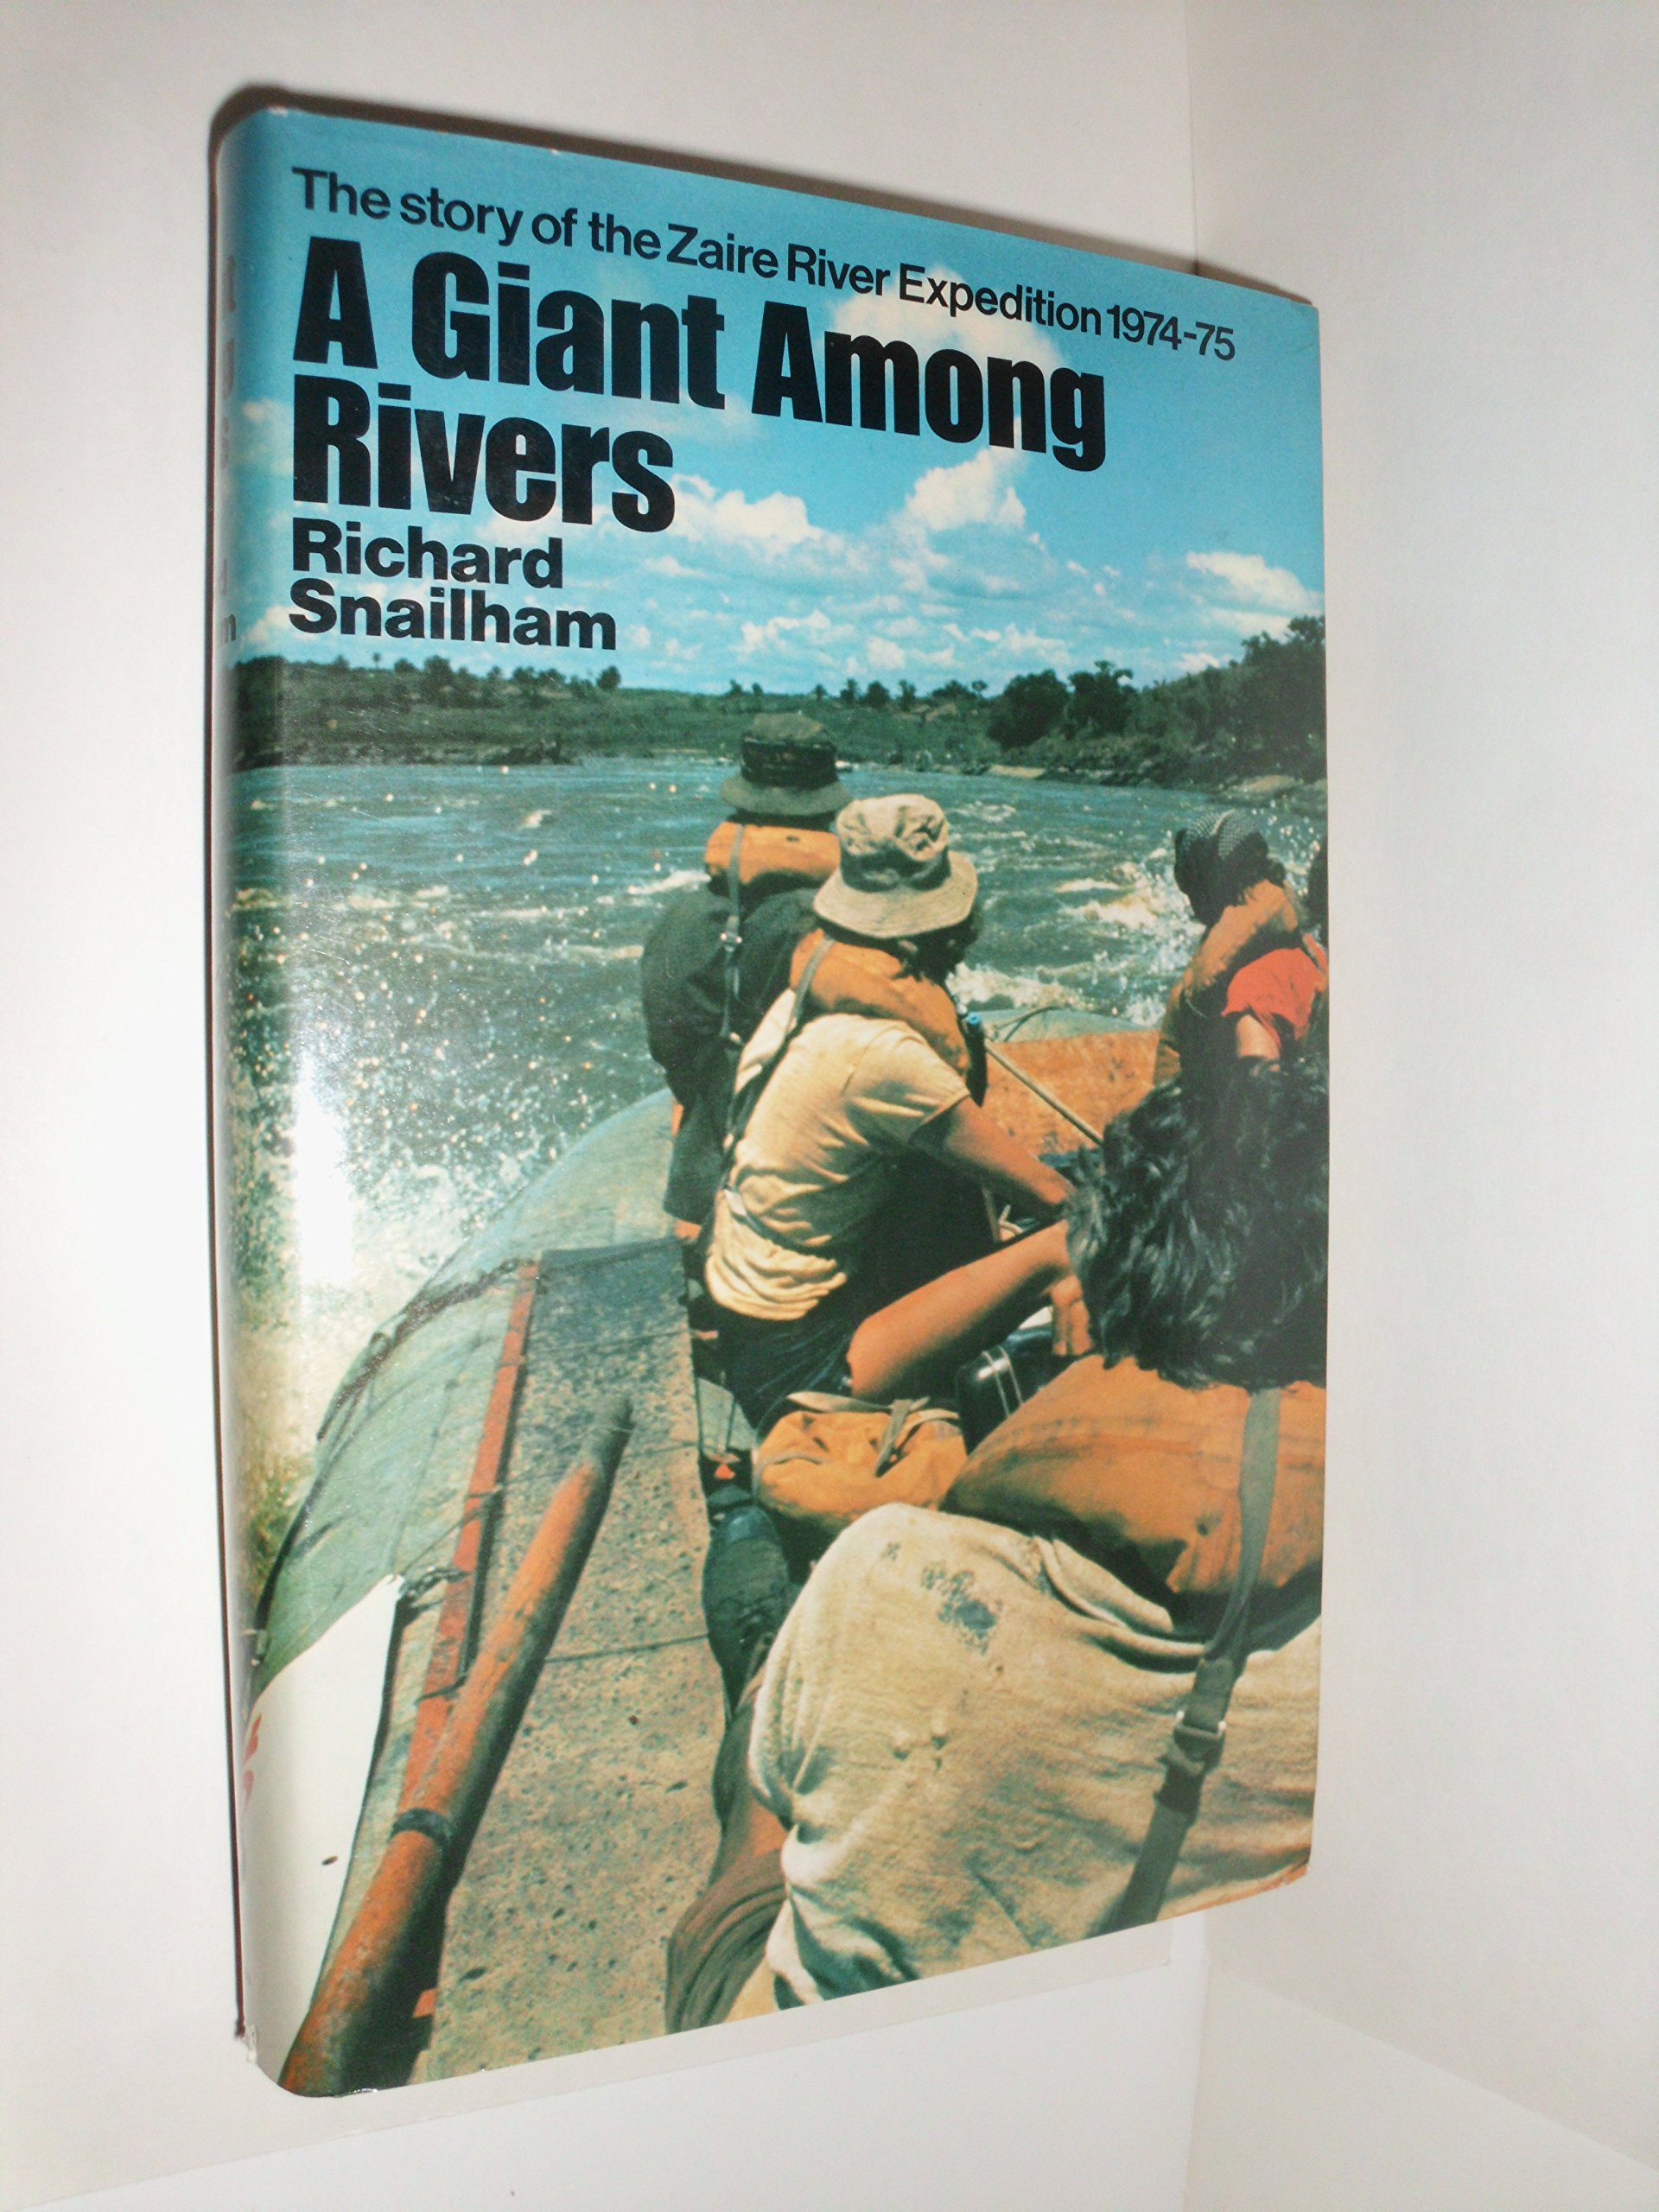 Giant Among Rivers: Story of the Zaire River Expedition